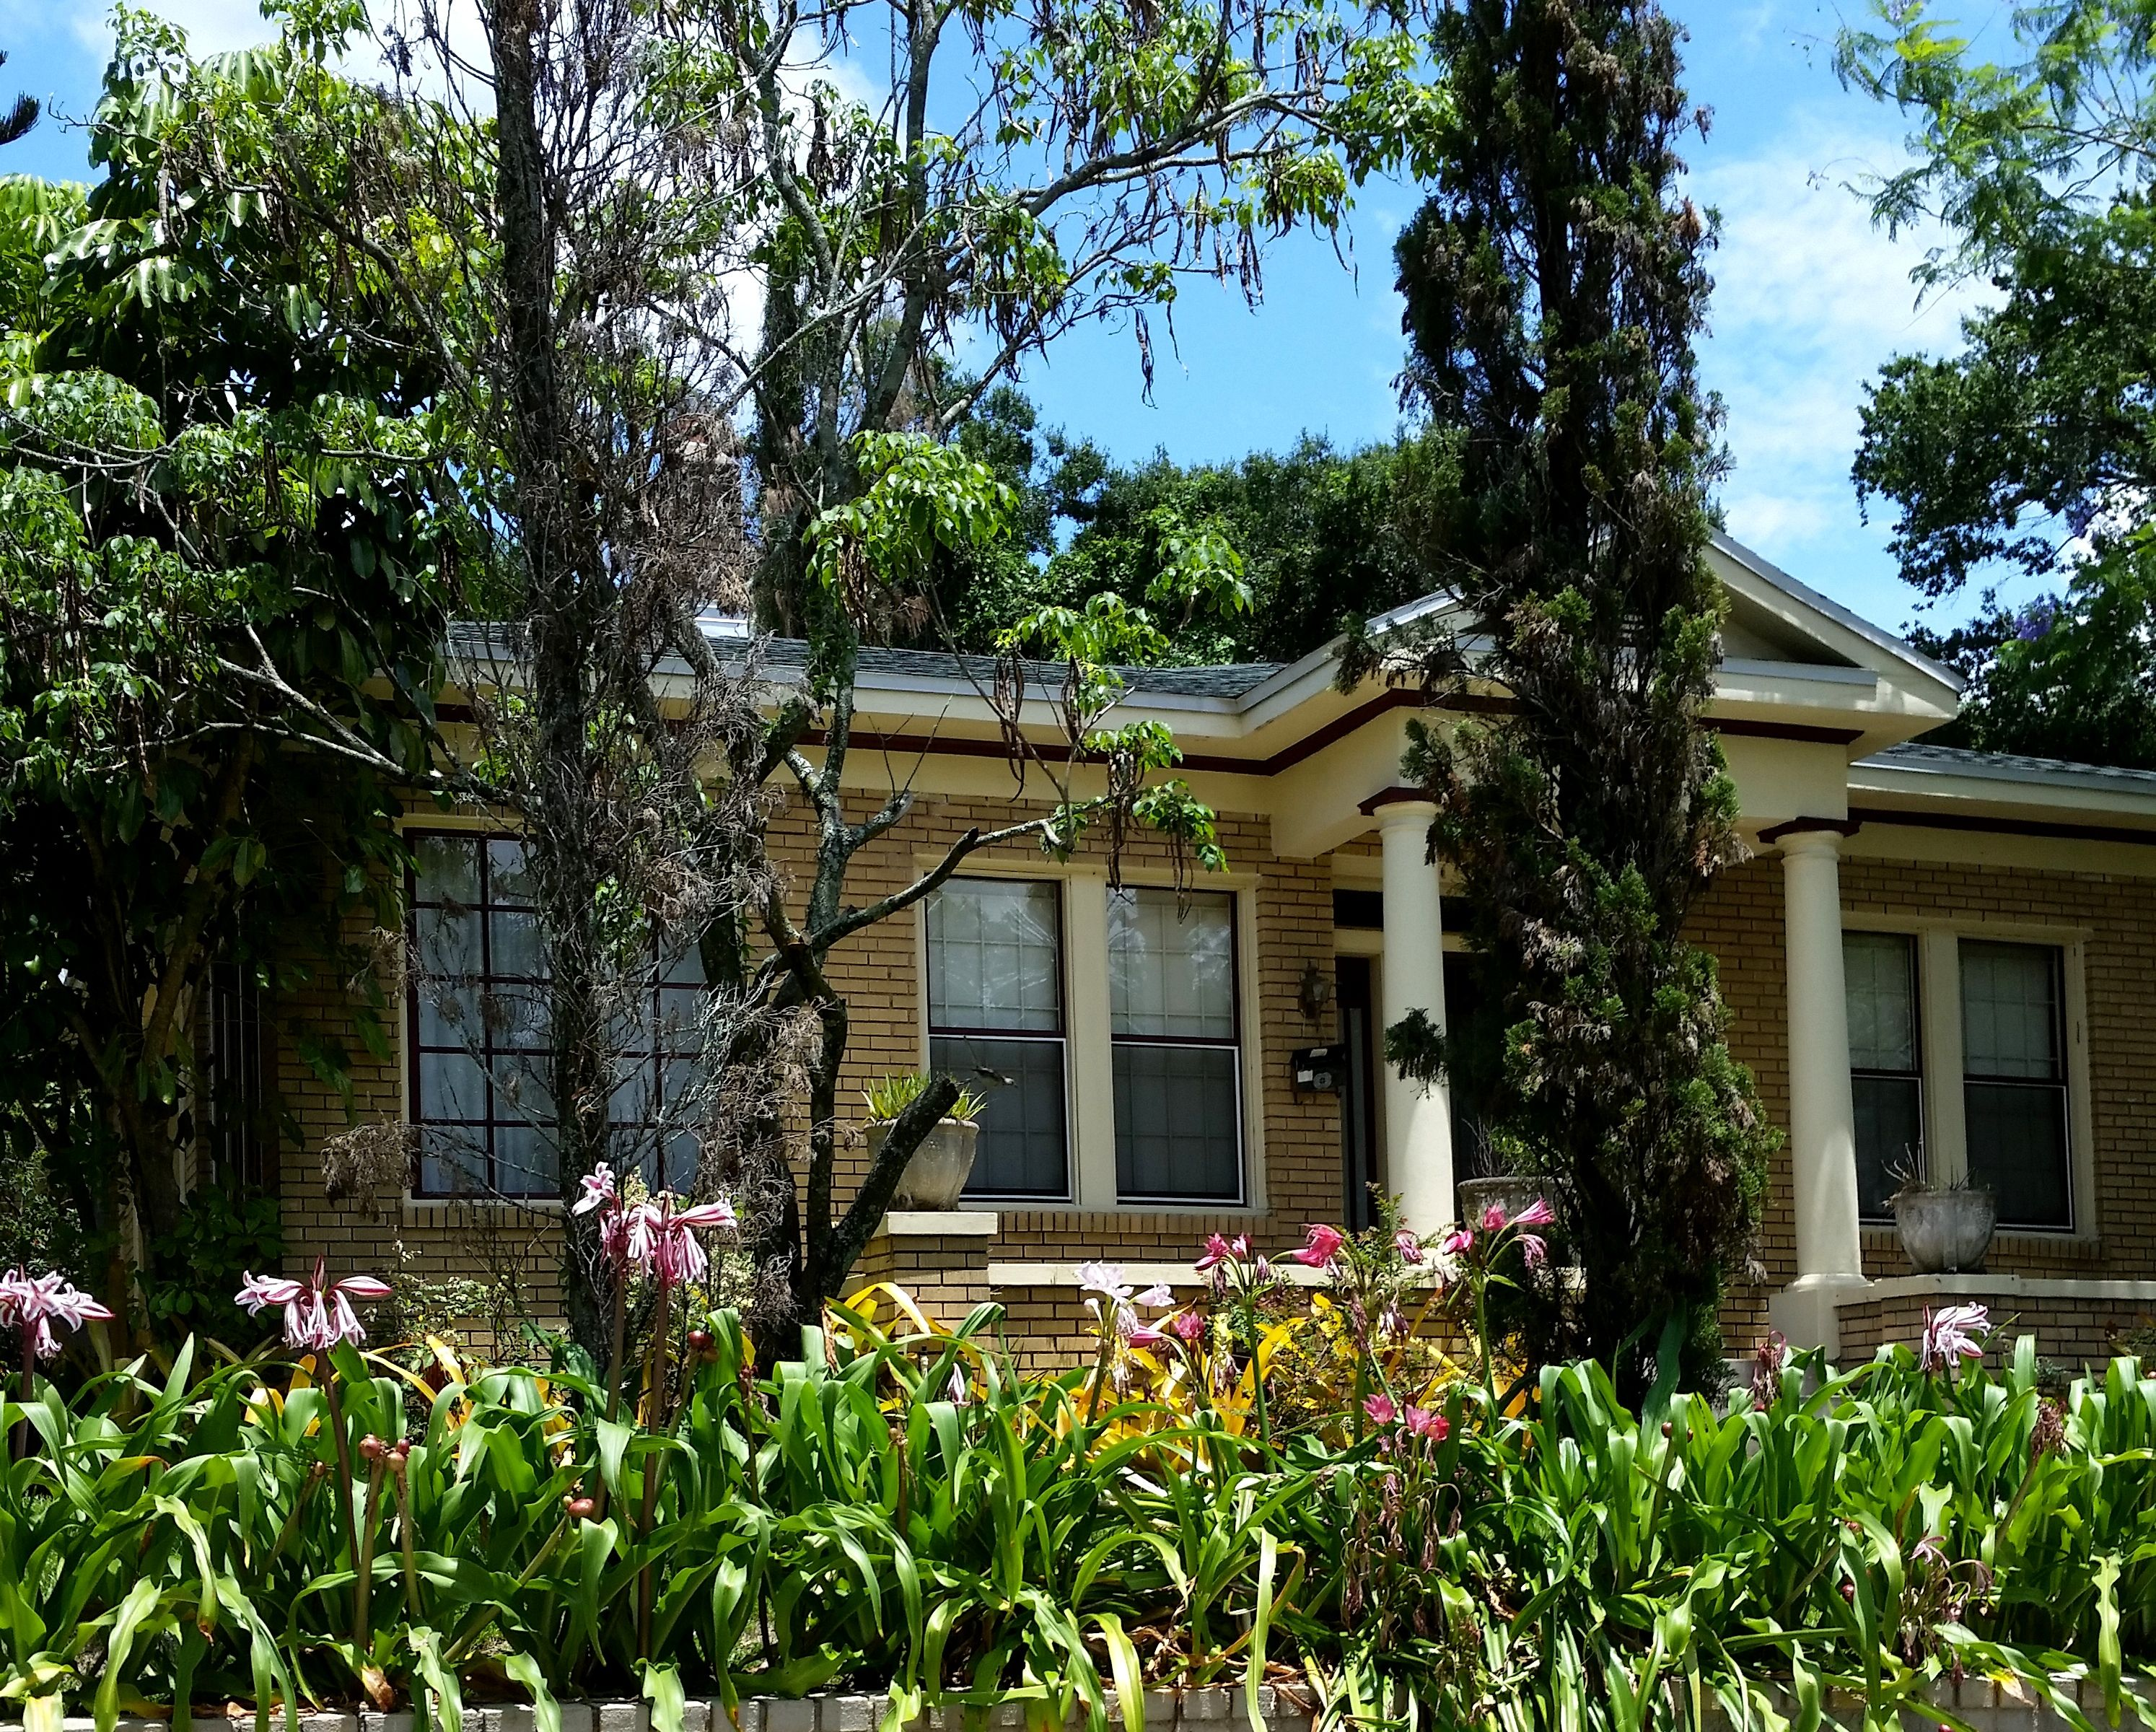 Brick Beauty With Lillies in Bloom, Find Seminole Heights